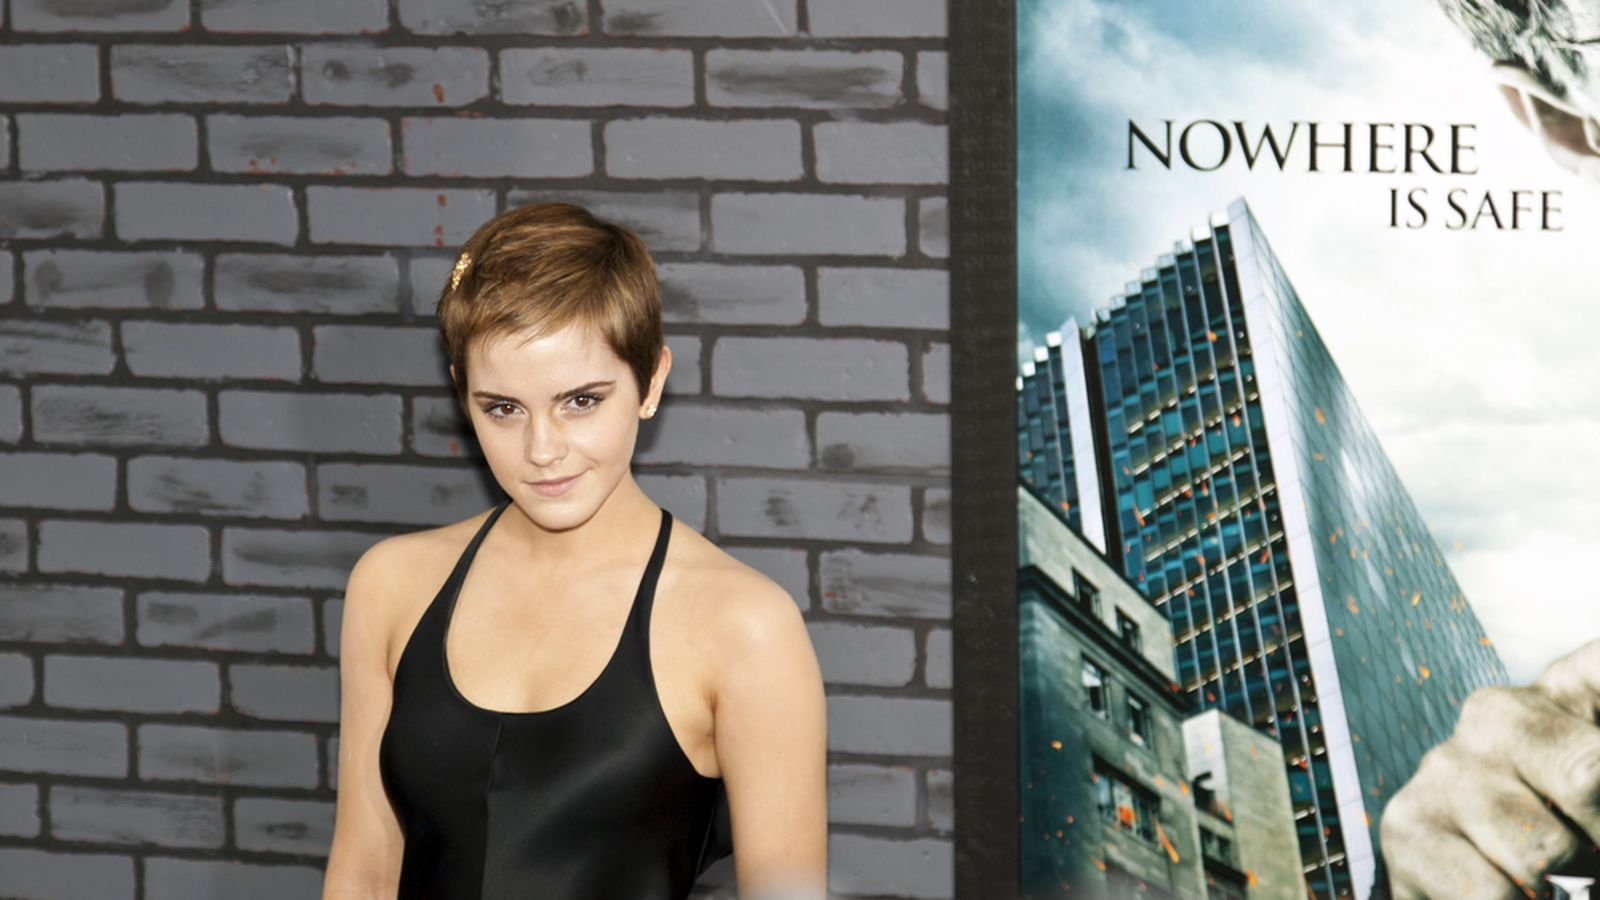 Emma Watson nude photo threats were apparently a plot to